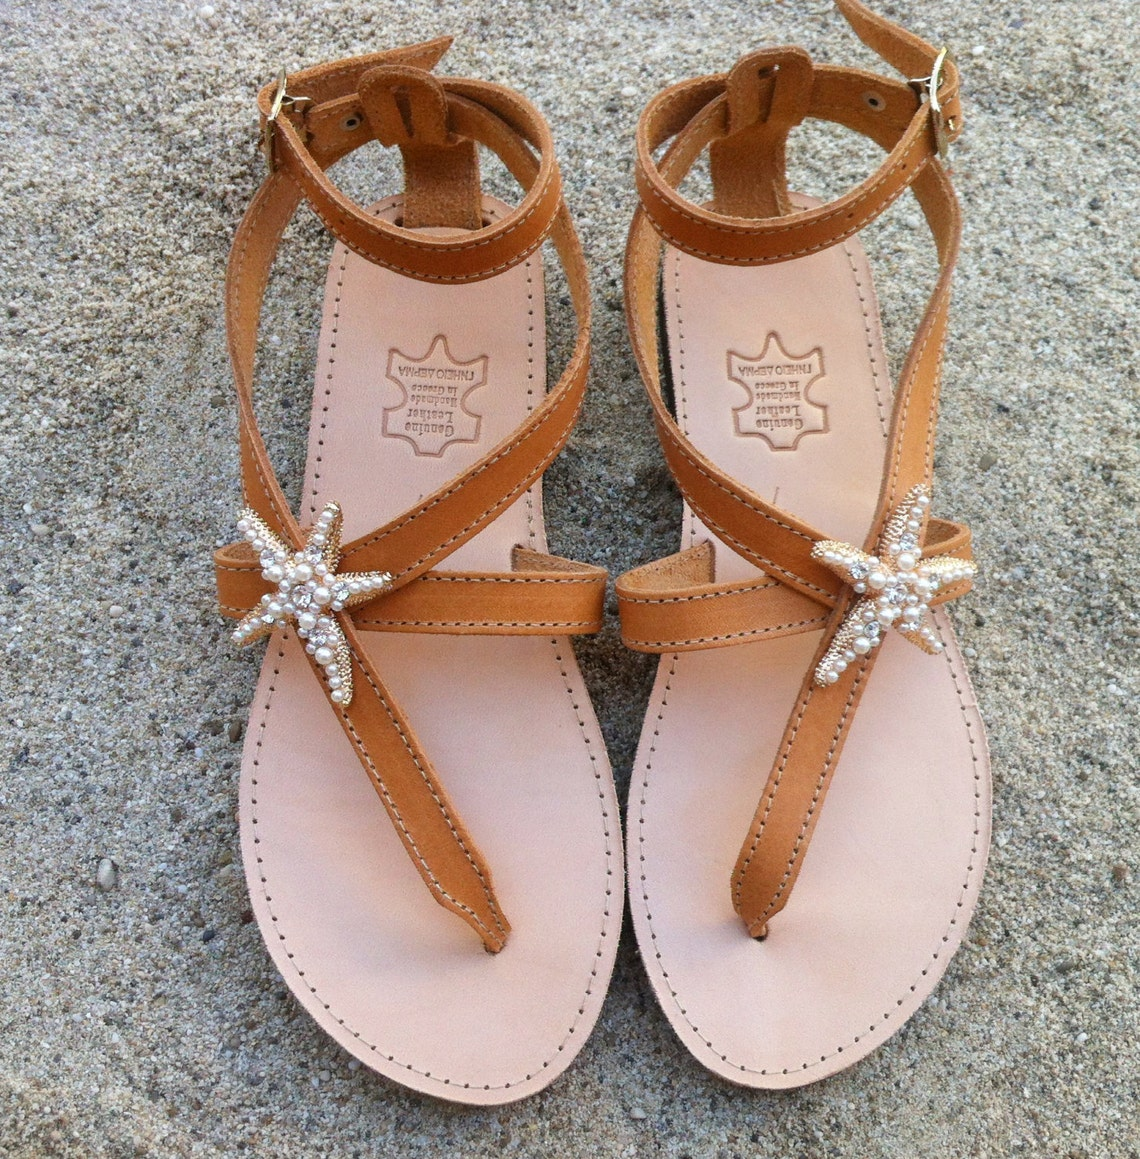 Sandals decorated with Starfish, leathers sandals, handmade shoes, wedding sandals